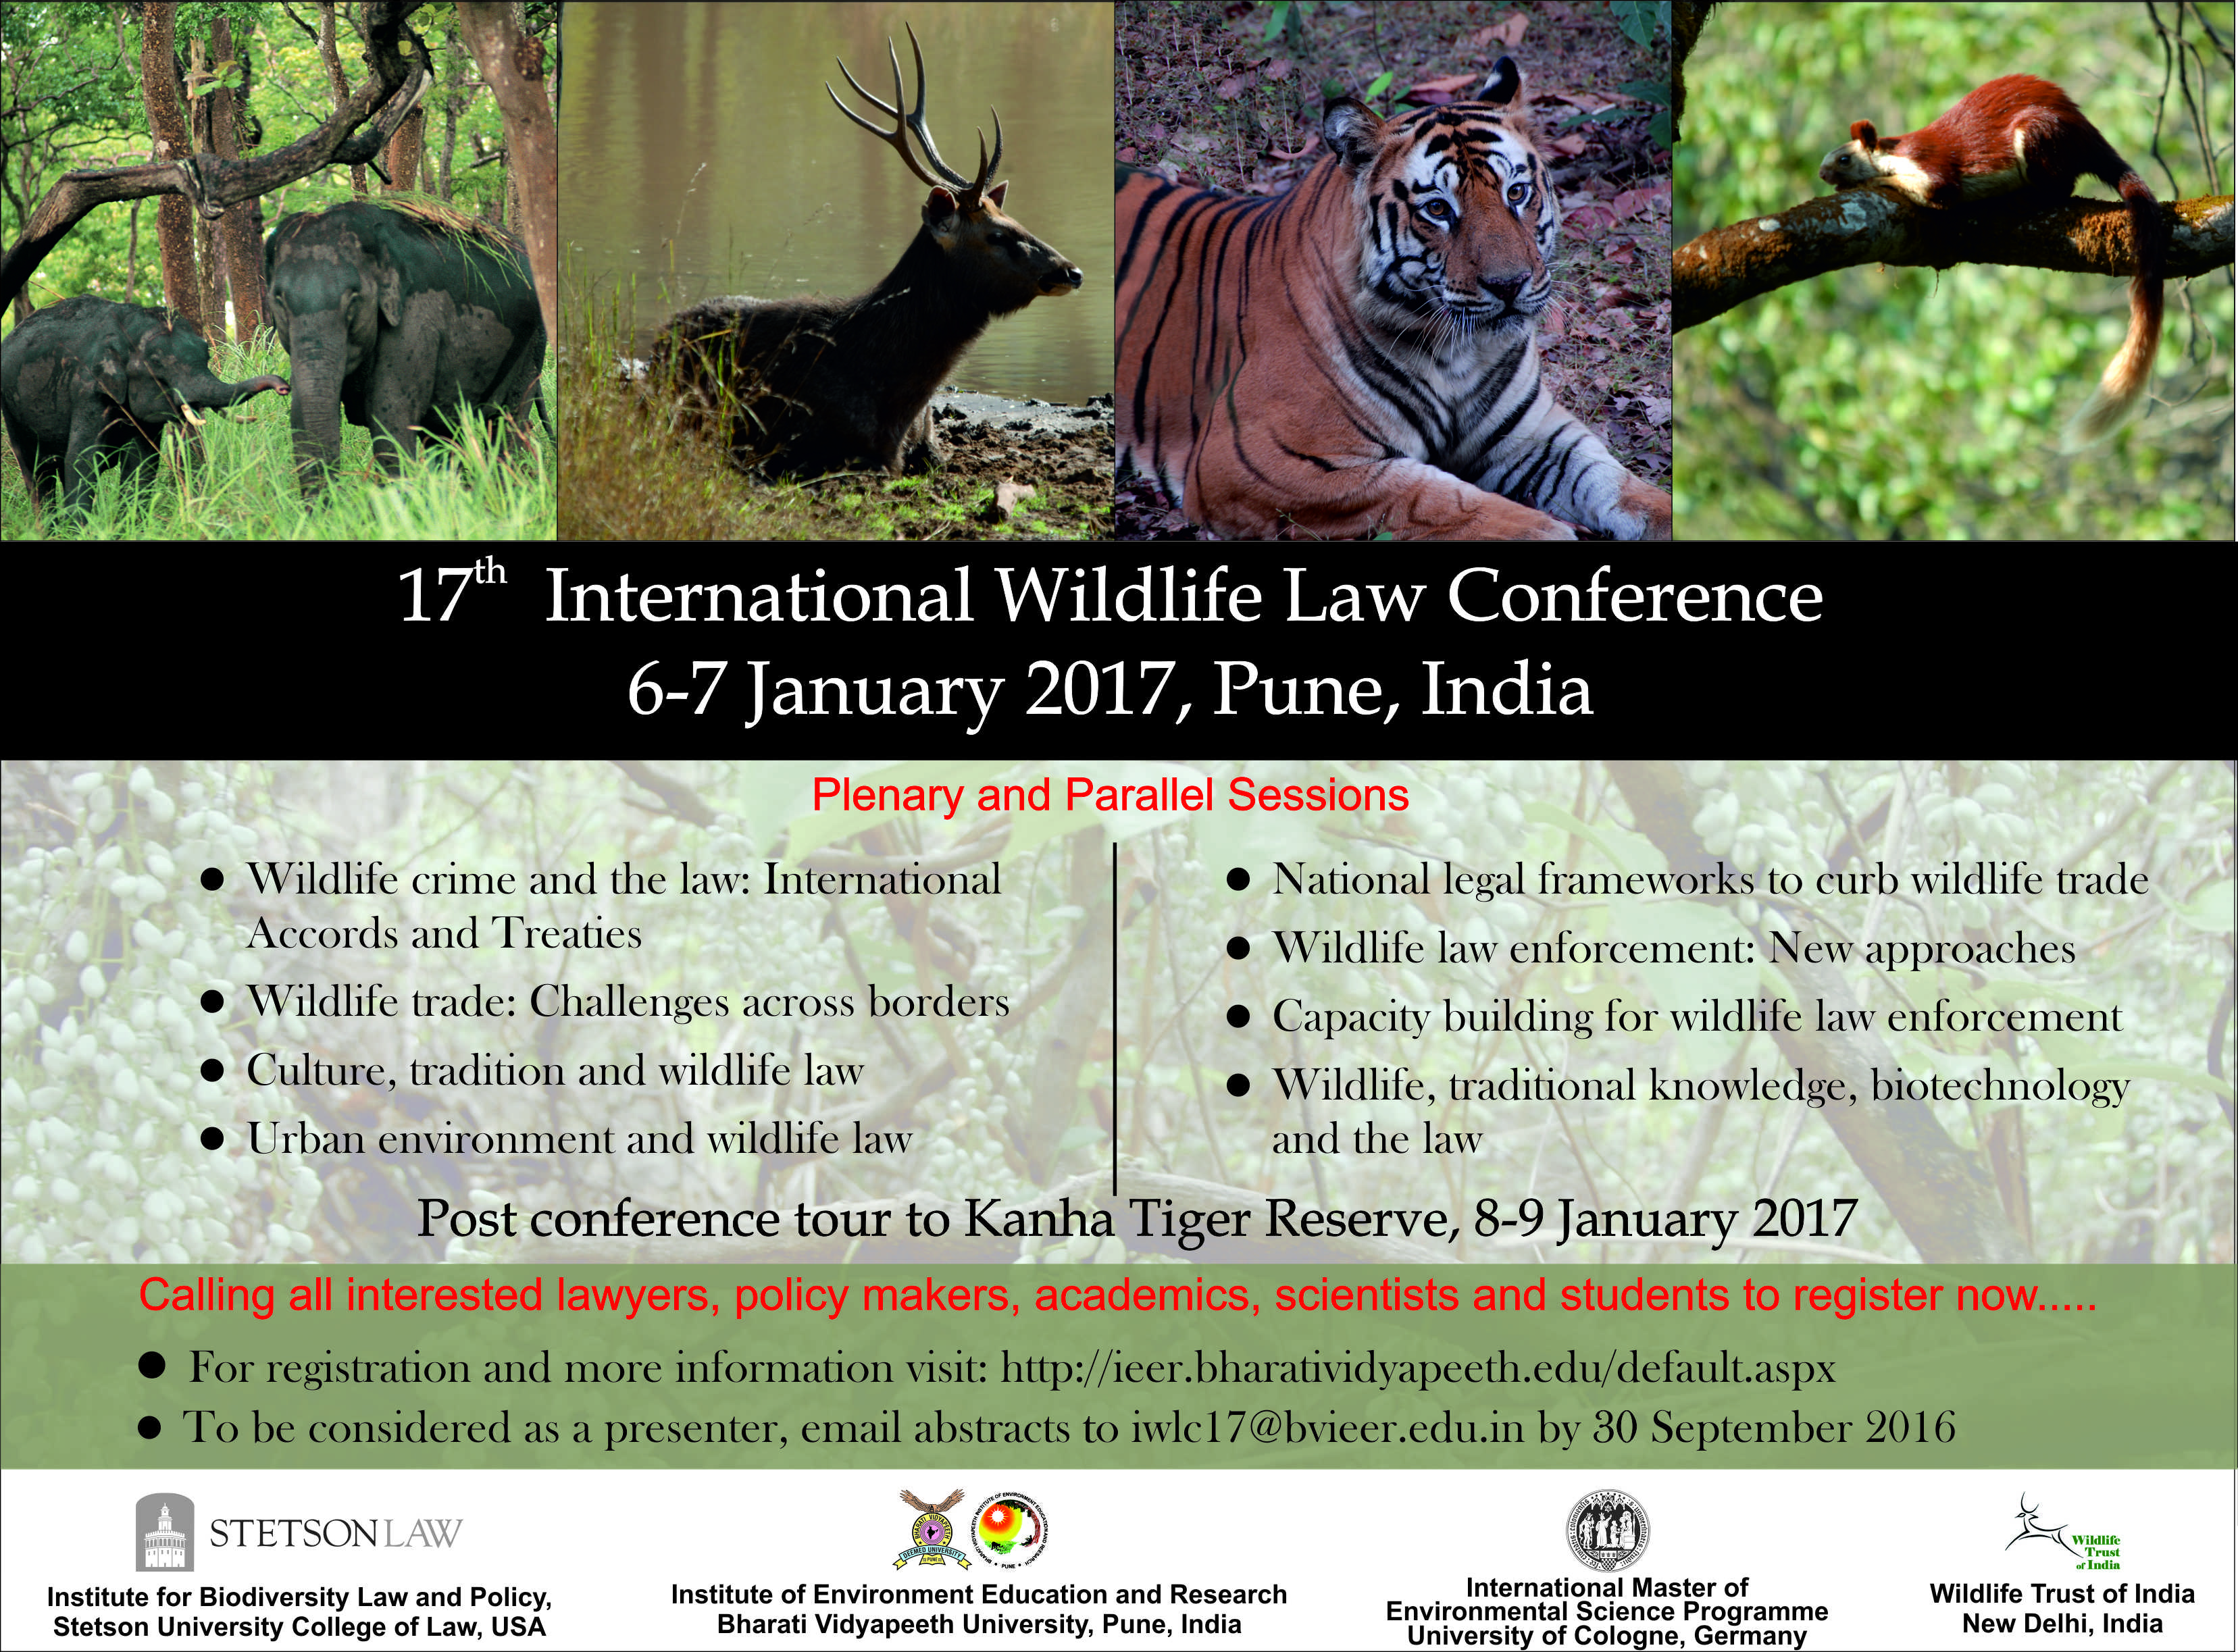 17th International Wildlife Law Conference